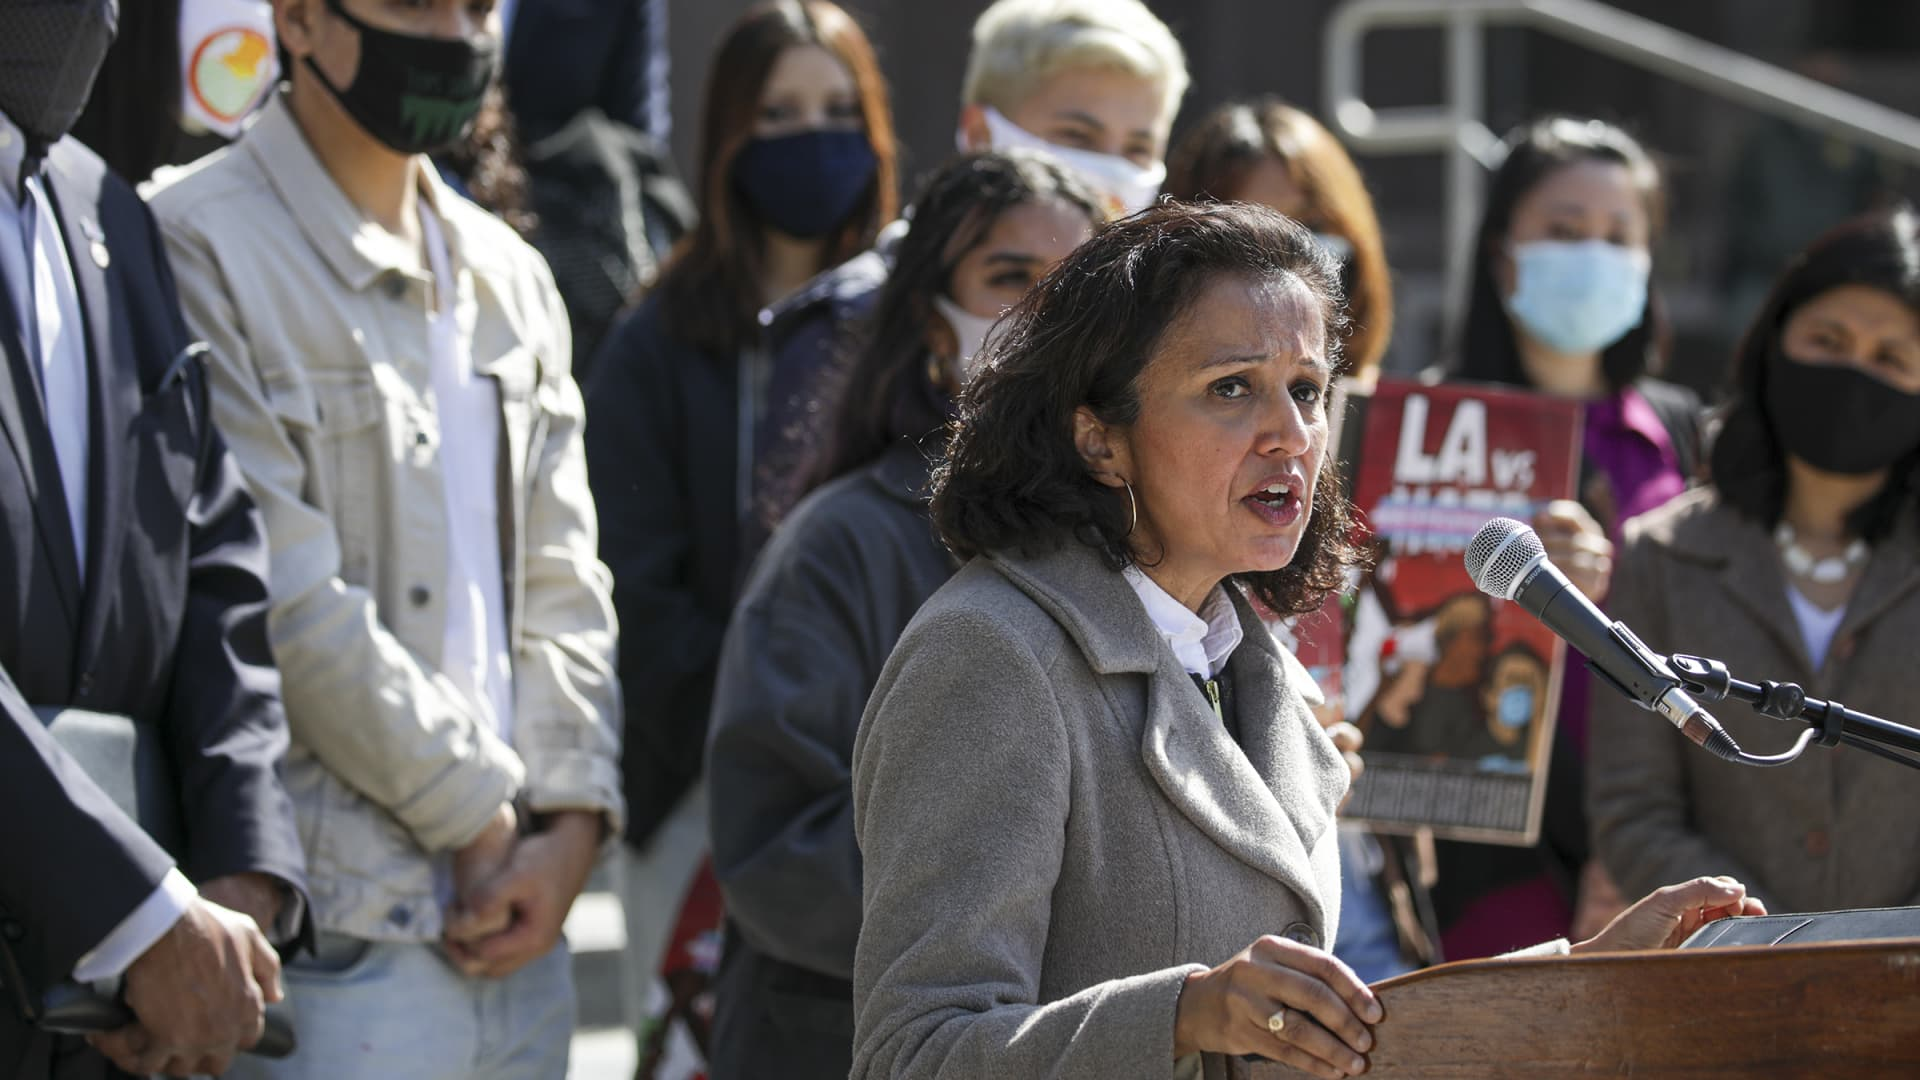 Manjusha Kulkarni, Asian Pacific Planning and Policy Council Executive Director, speaks against the hate and recent violence against Asian Americans at a rally held on the steps of County Hall of Administration on Wednesday, March 17, 2021 in Los Angeles, CA.